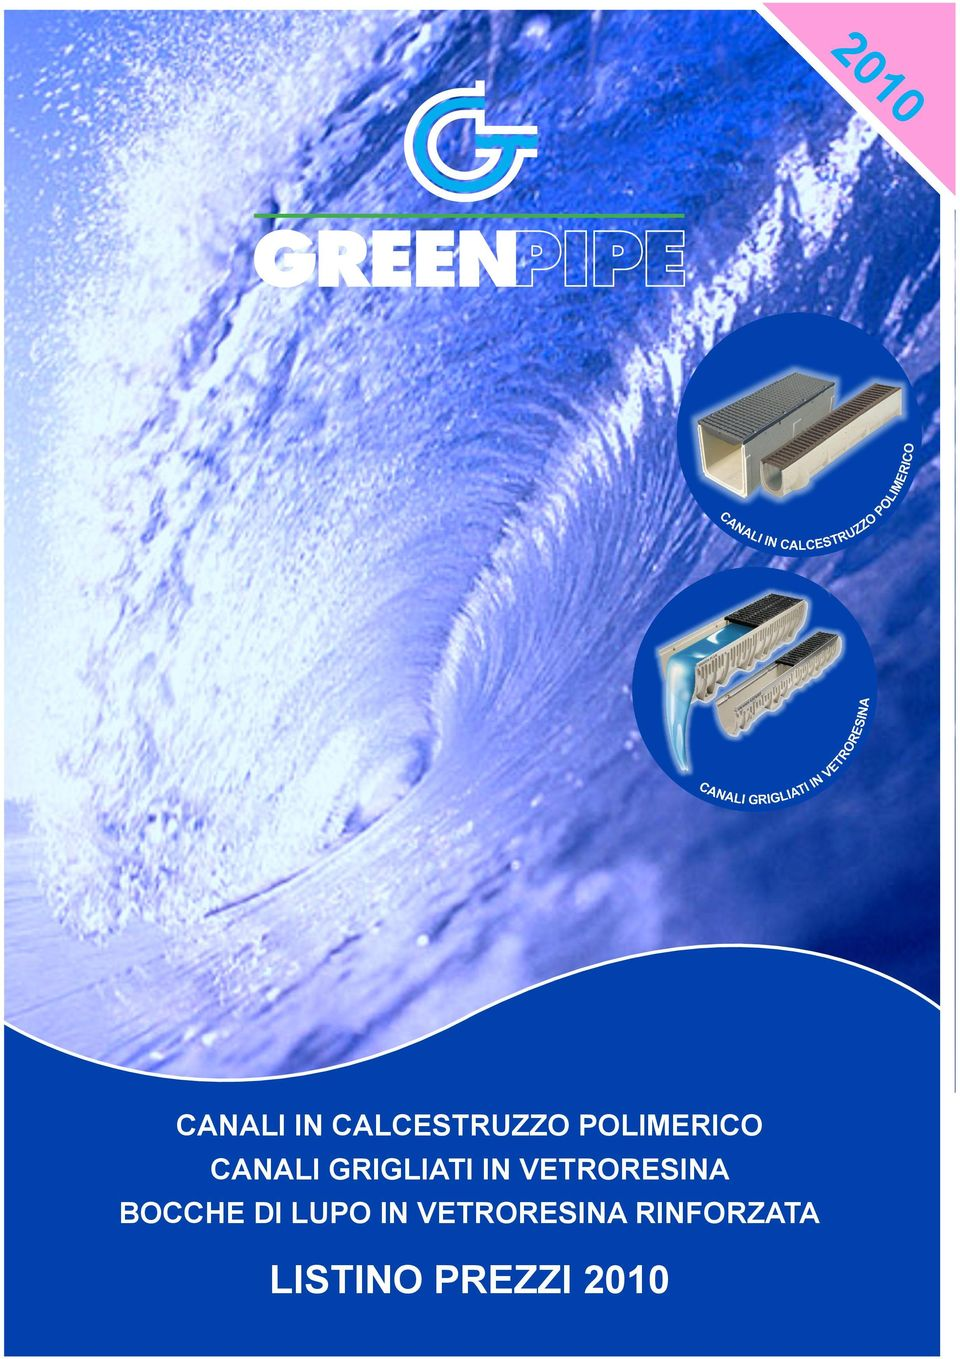 it www.greenpipe.it Roma Area Manager - Lamarucciola G. 335 1980521 Cell.